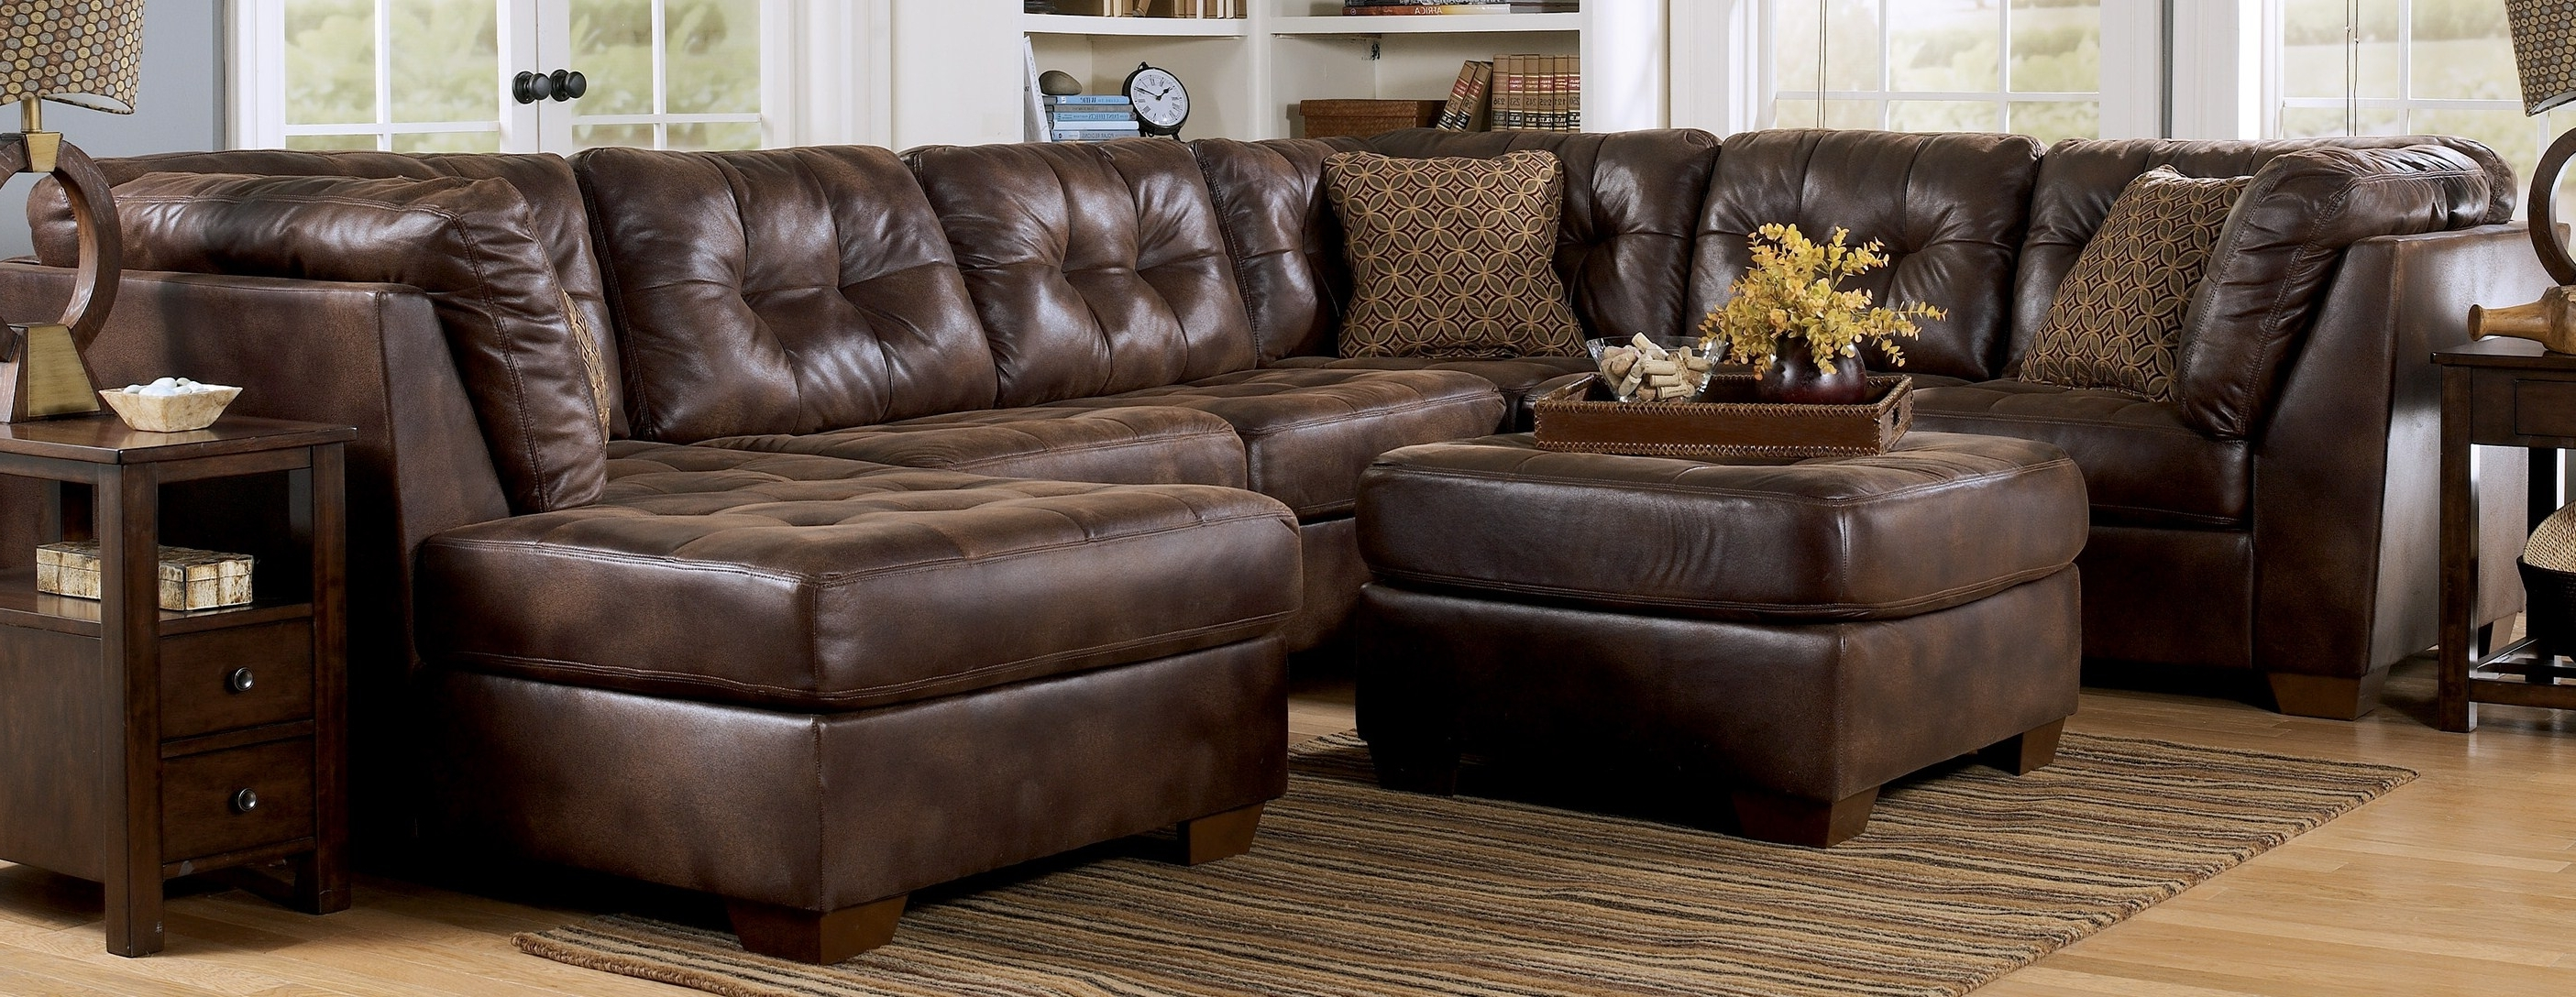 Sectionals With Chaise And Ottoman With Favorite Big Lots Recliners Ashley Furniture Sectional Sofas Cheap (View 11 of 15)